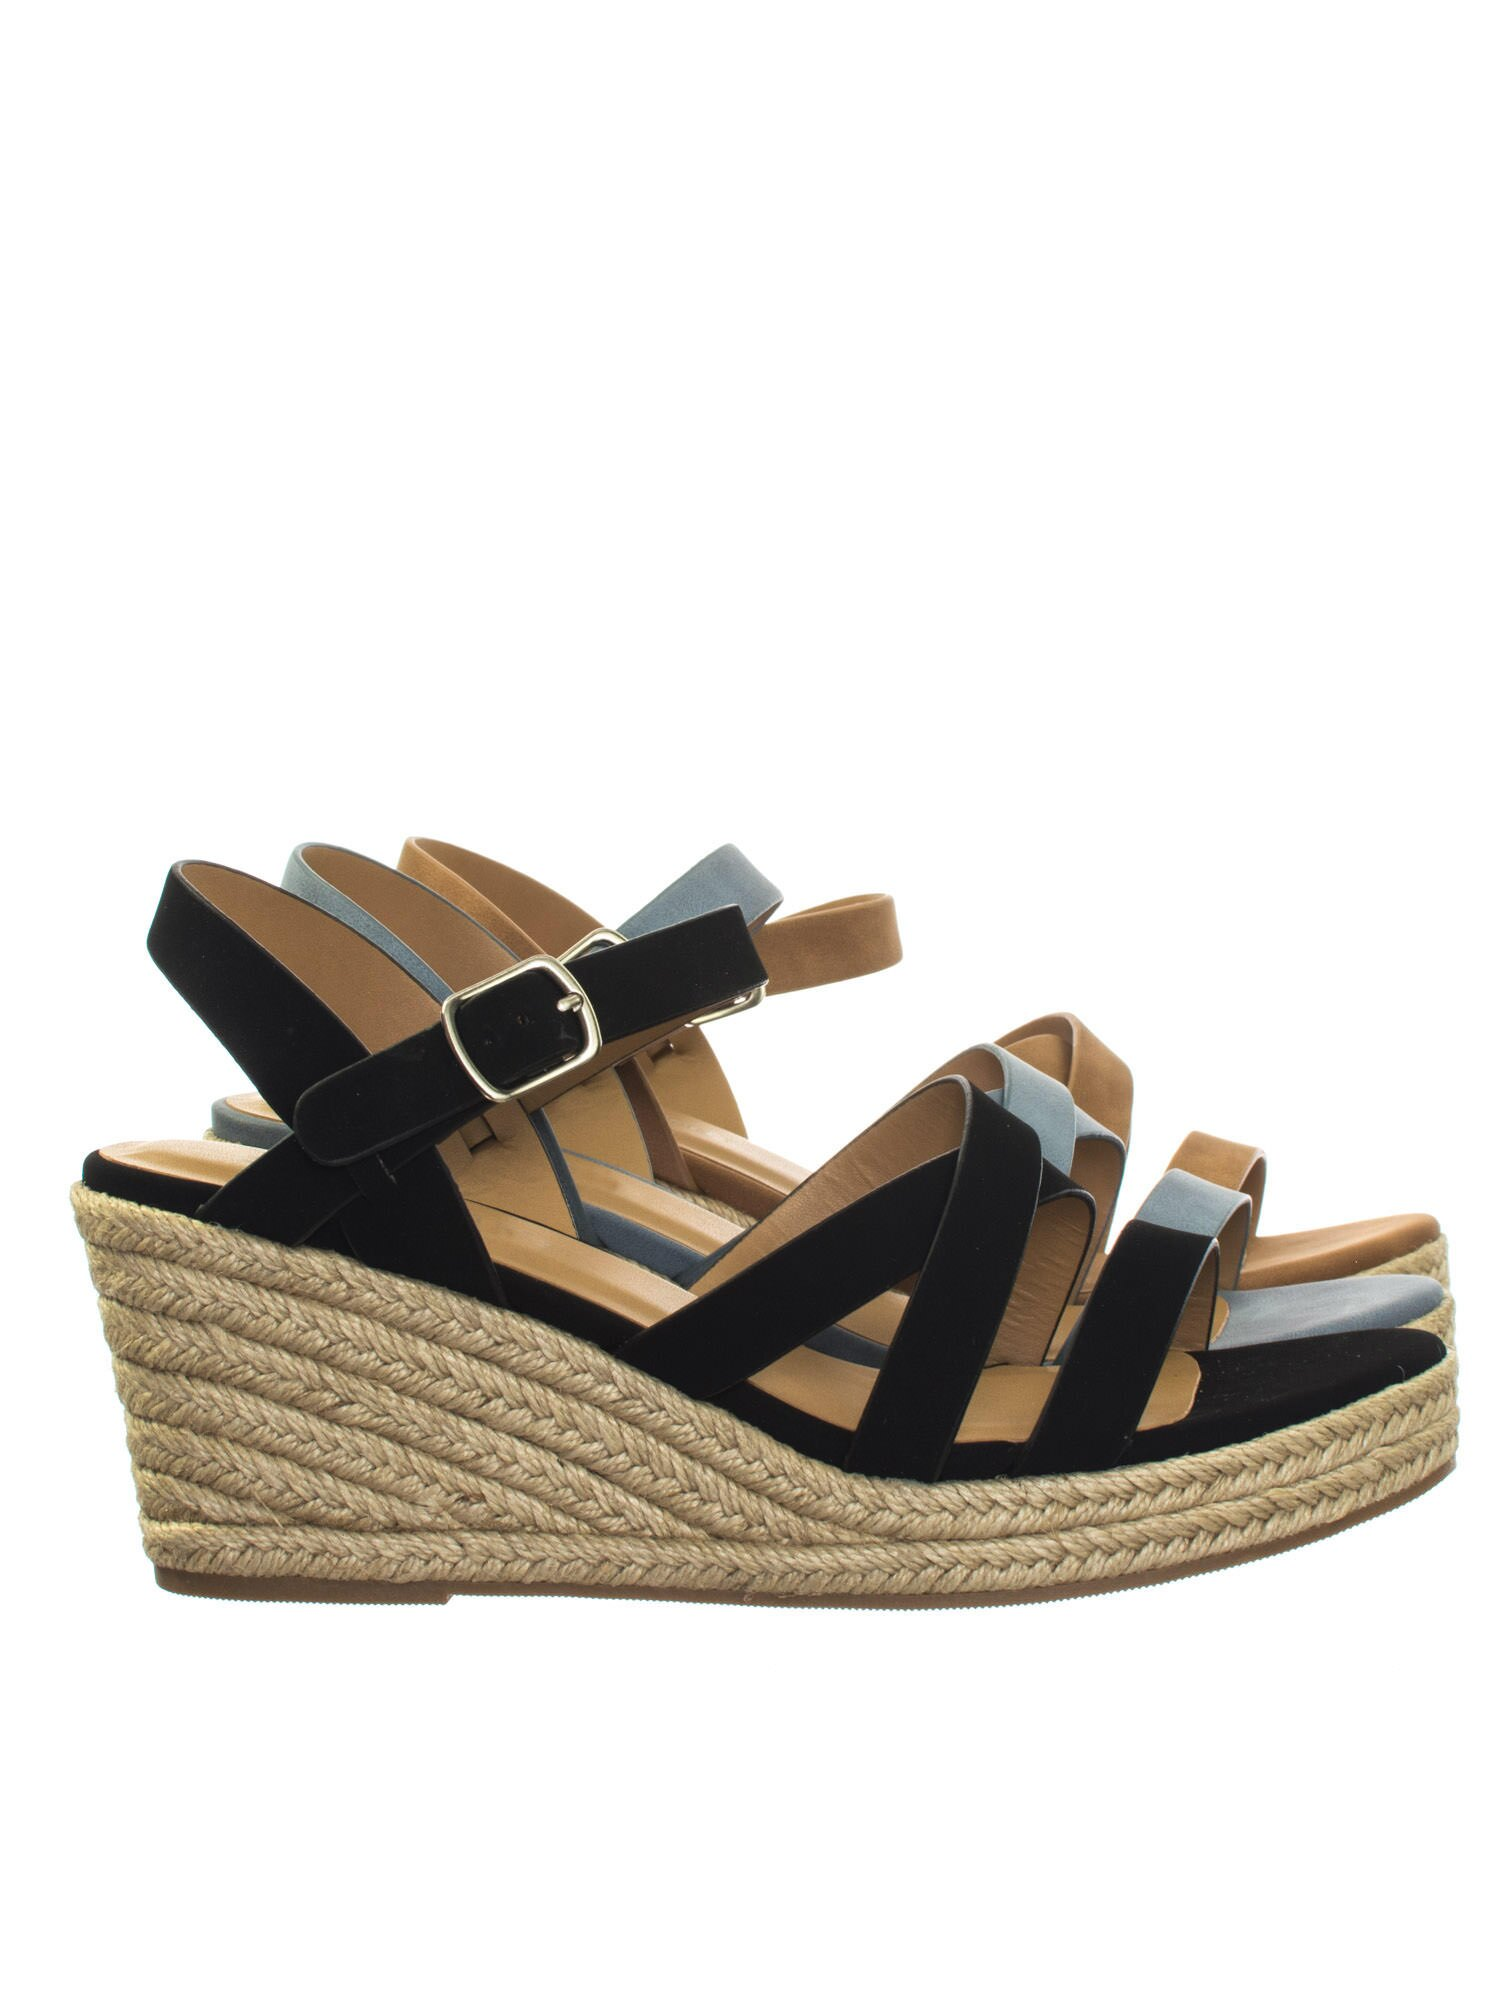 fb91e171915 Jubilee Black by City Classified Espadrille Rope Jute Wrap Platform Wedge  Open Toe Dress Sandal 0